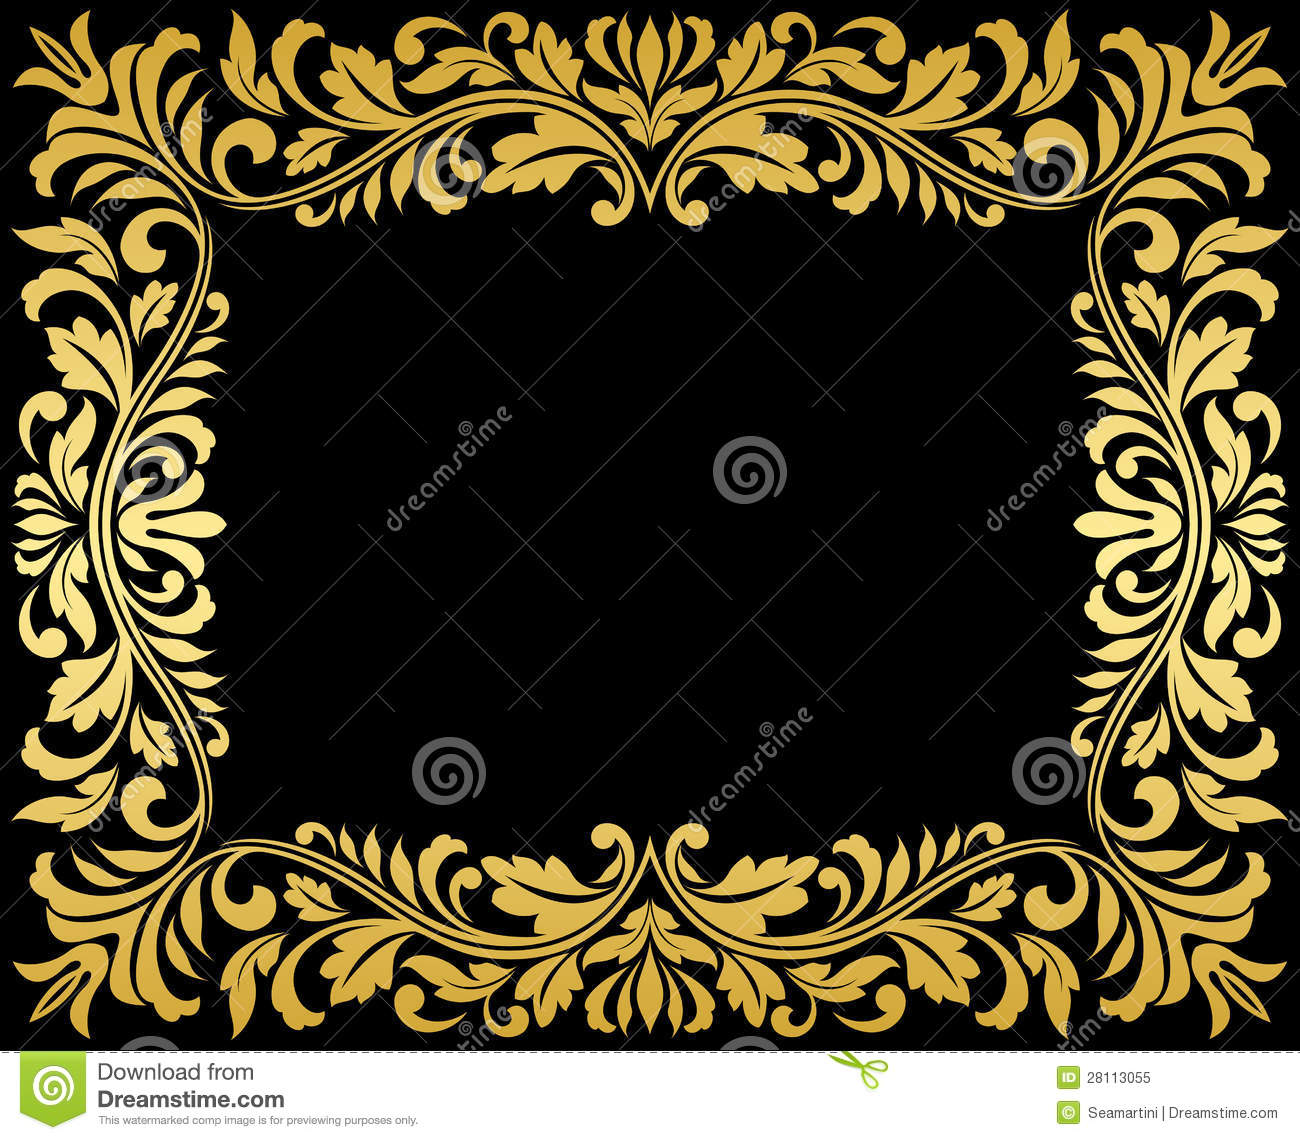 Vintage gold frame with floral